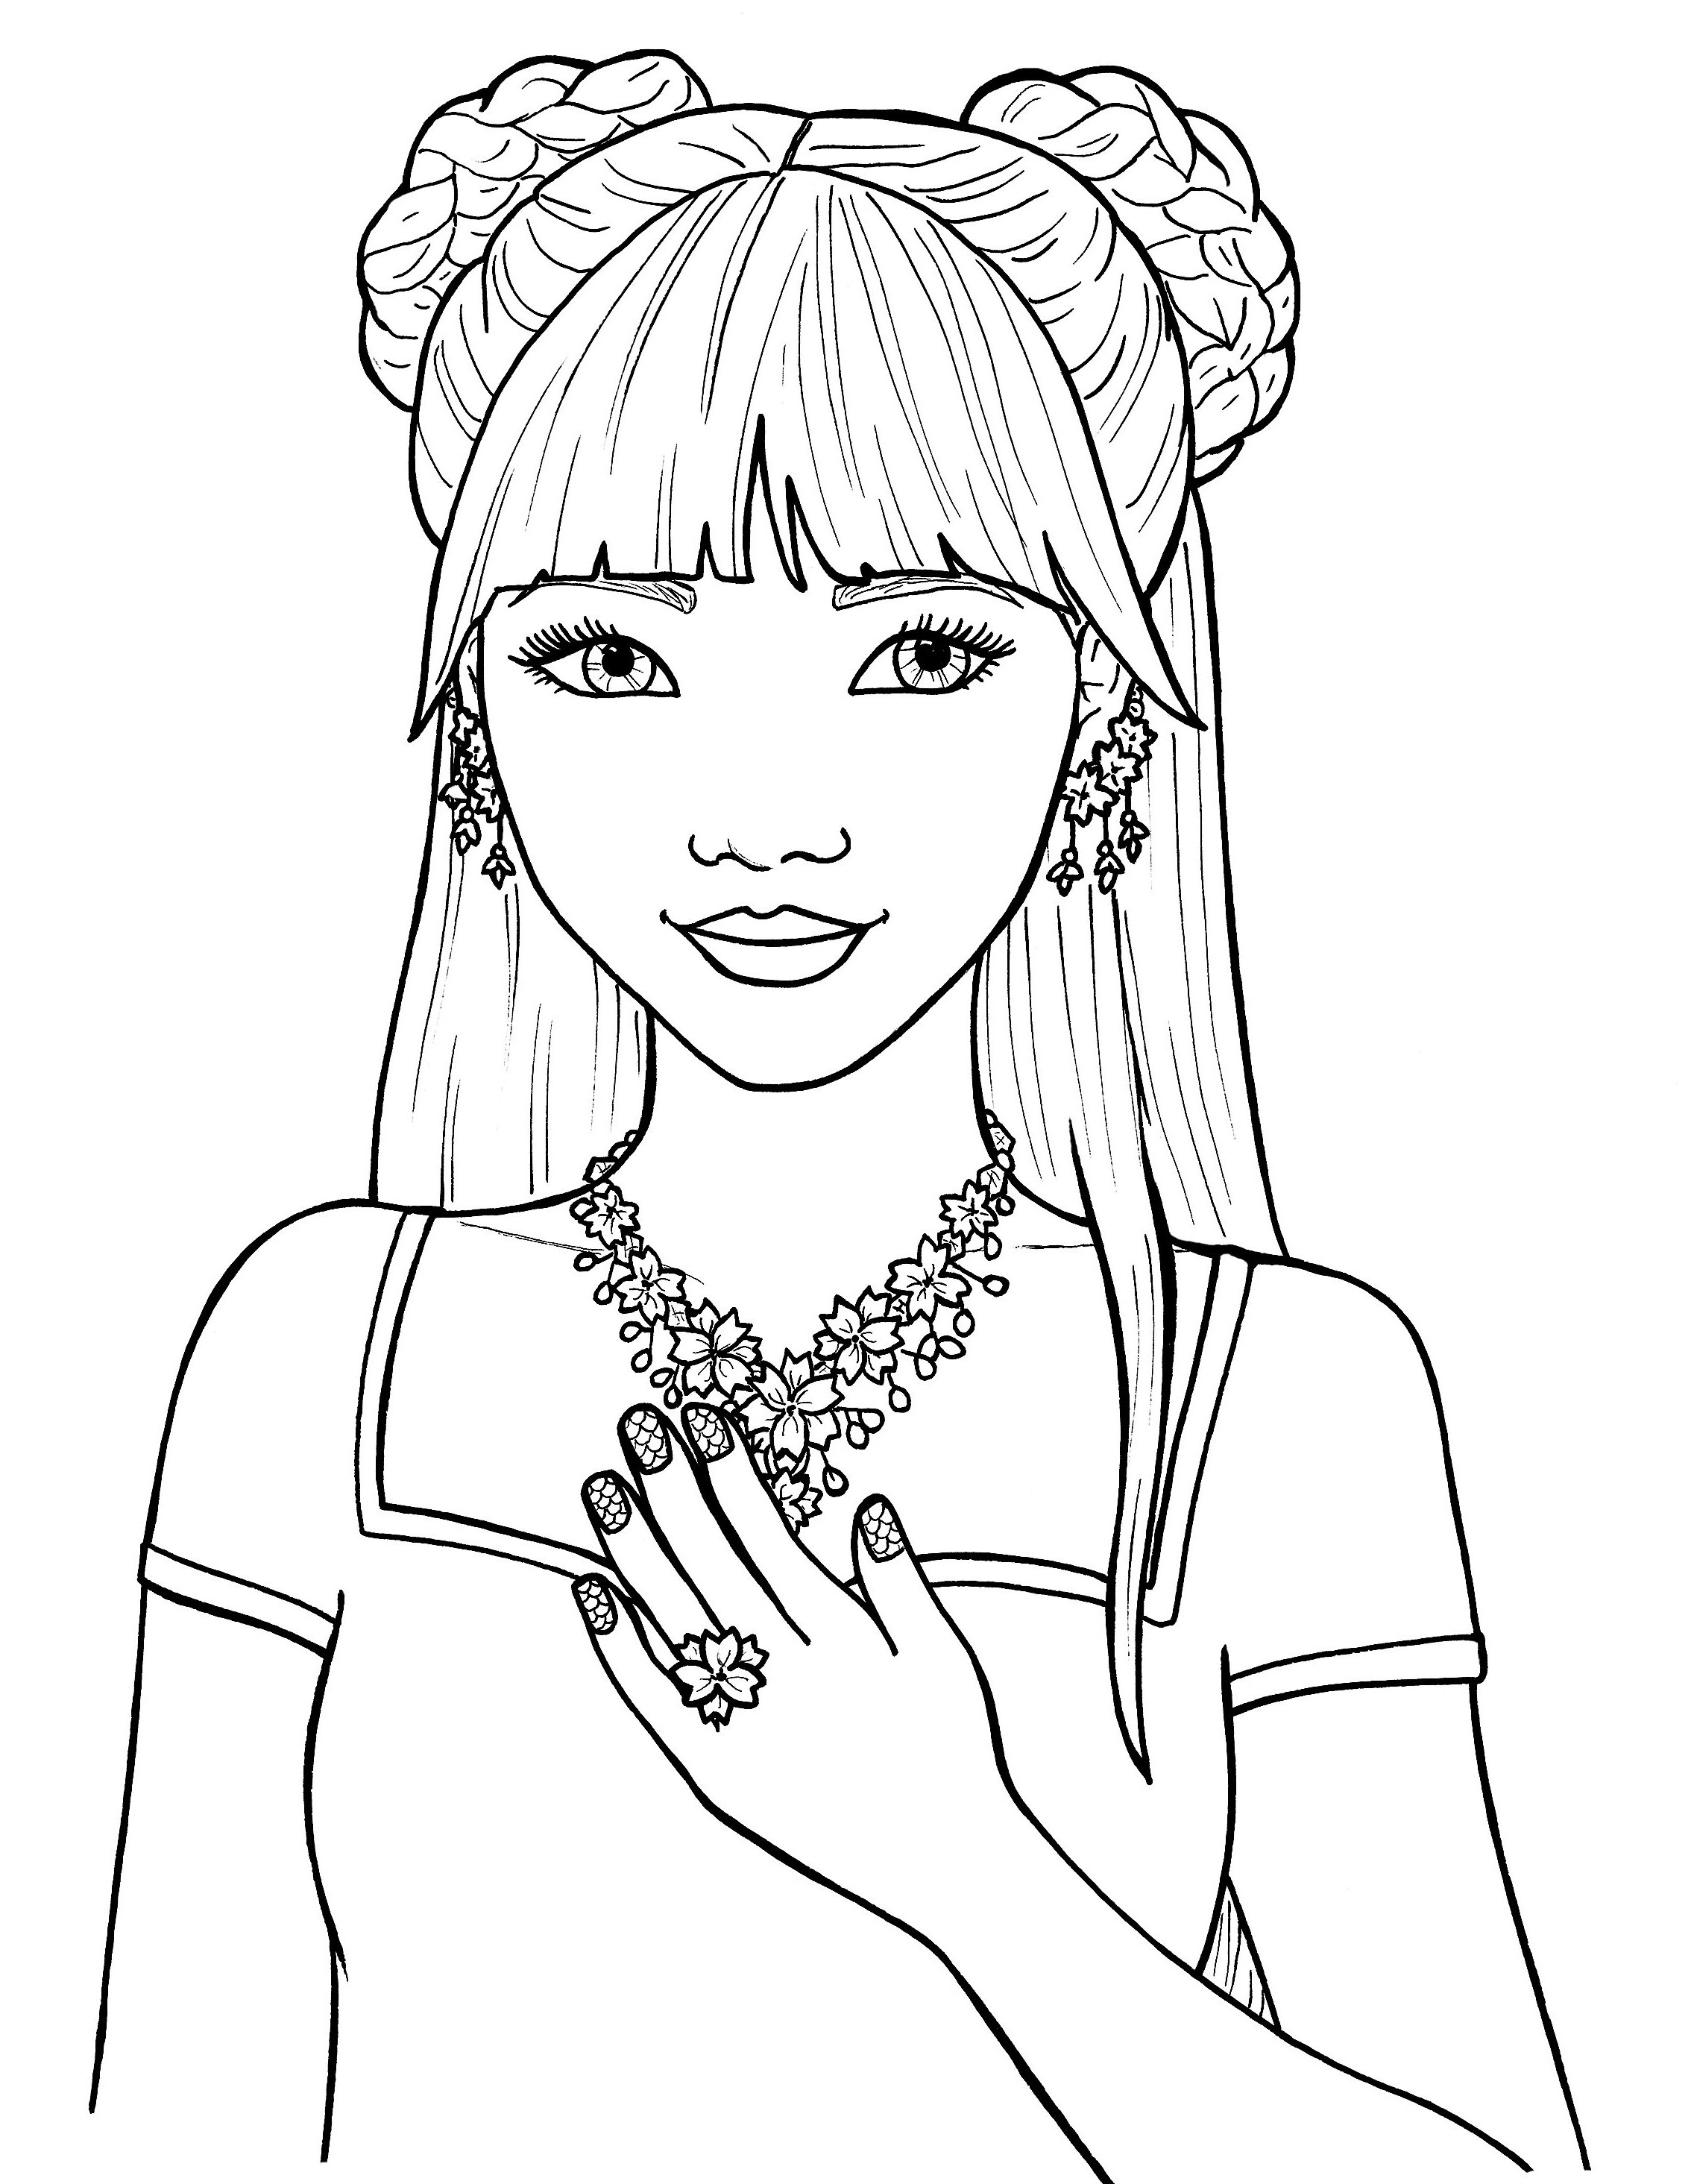 coloring pages for little girls cute little girl coloring pages at getcoloringscom free coloring pages girls for little